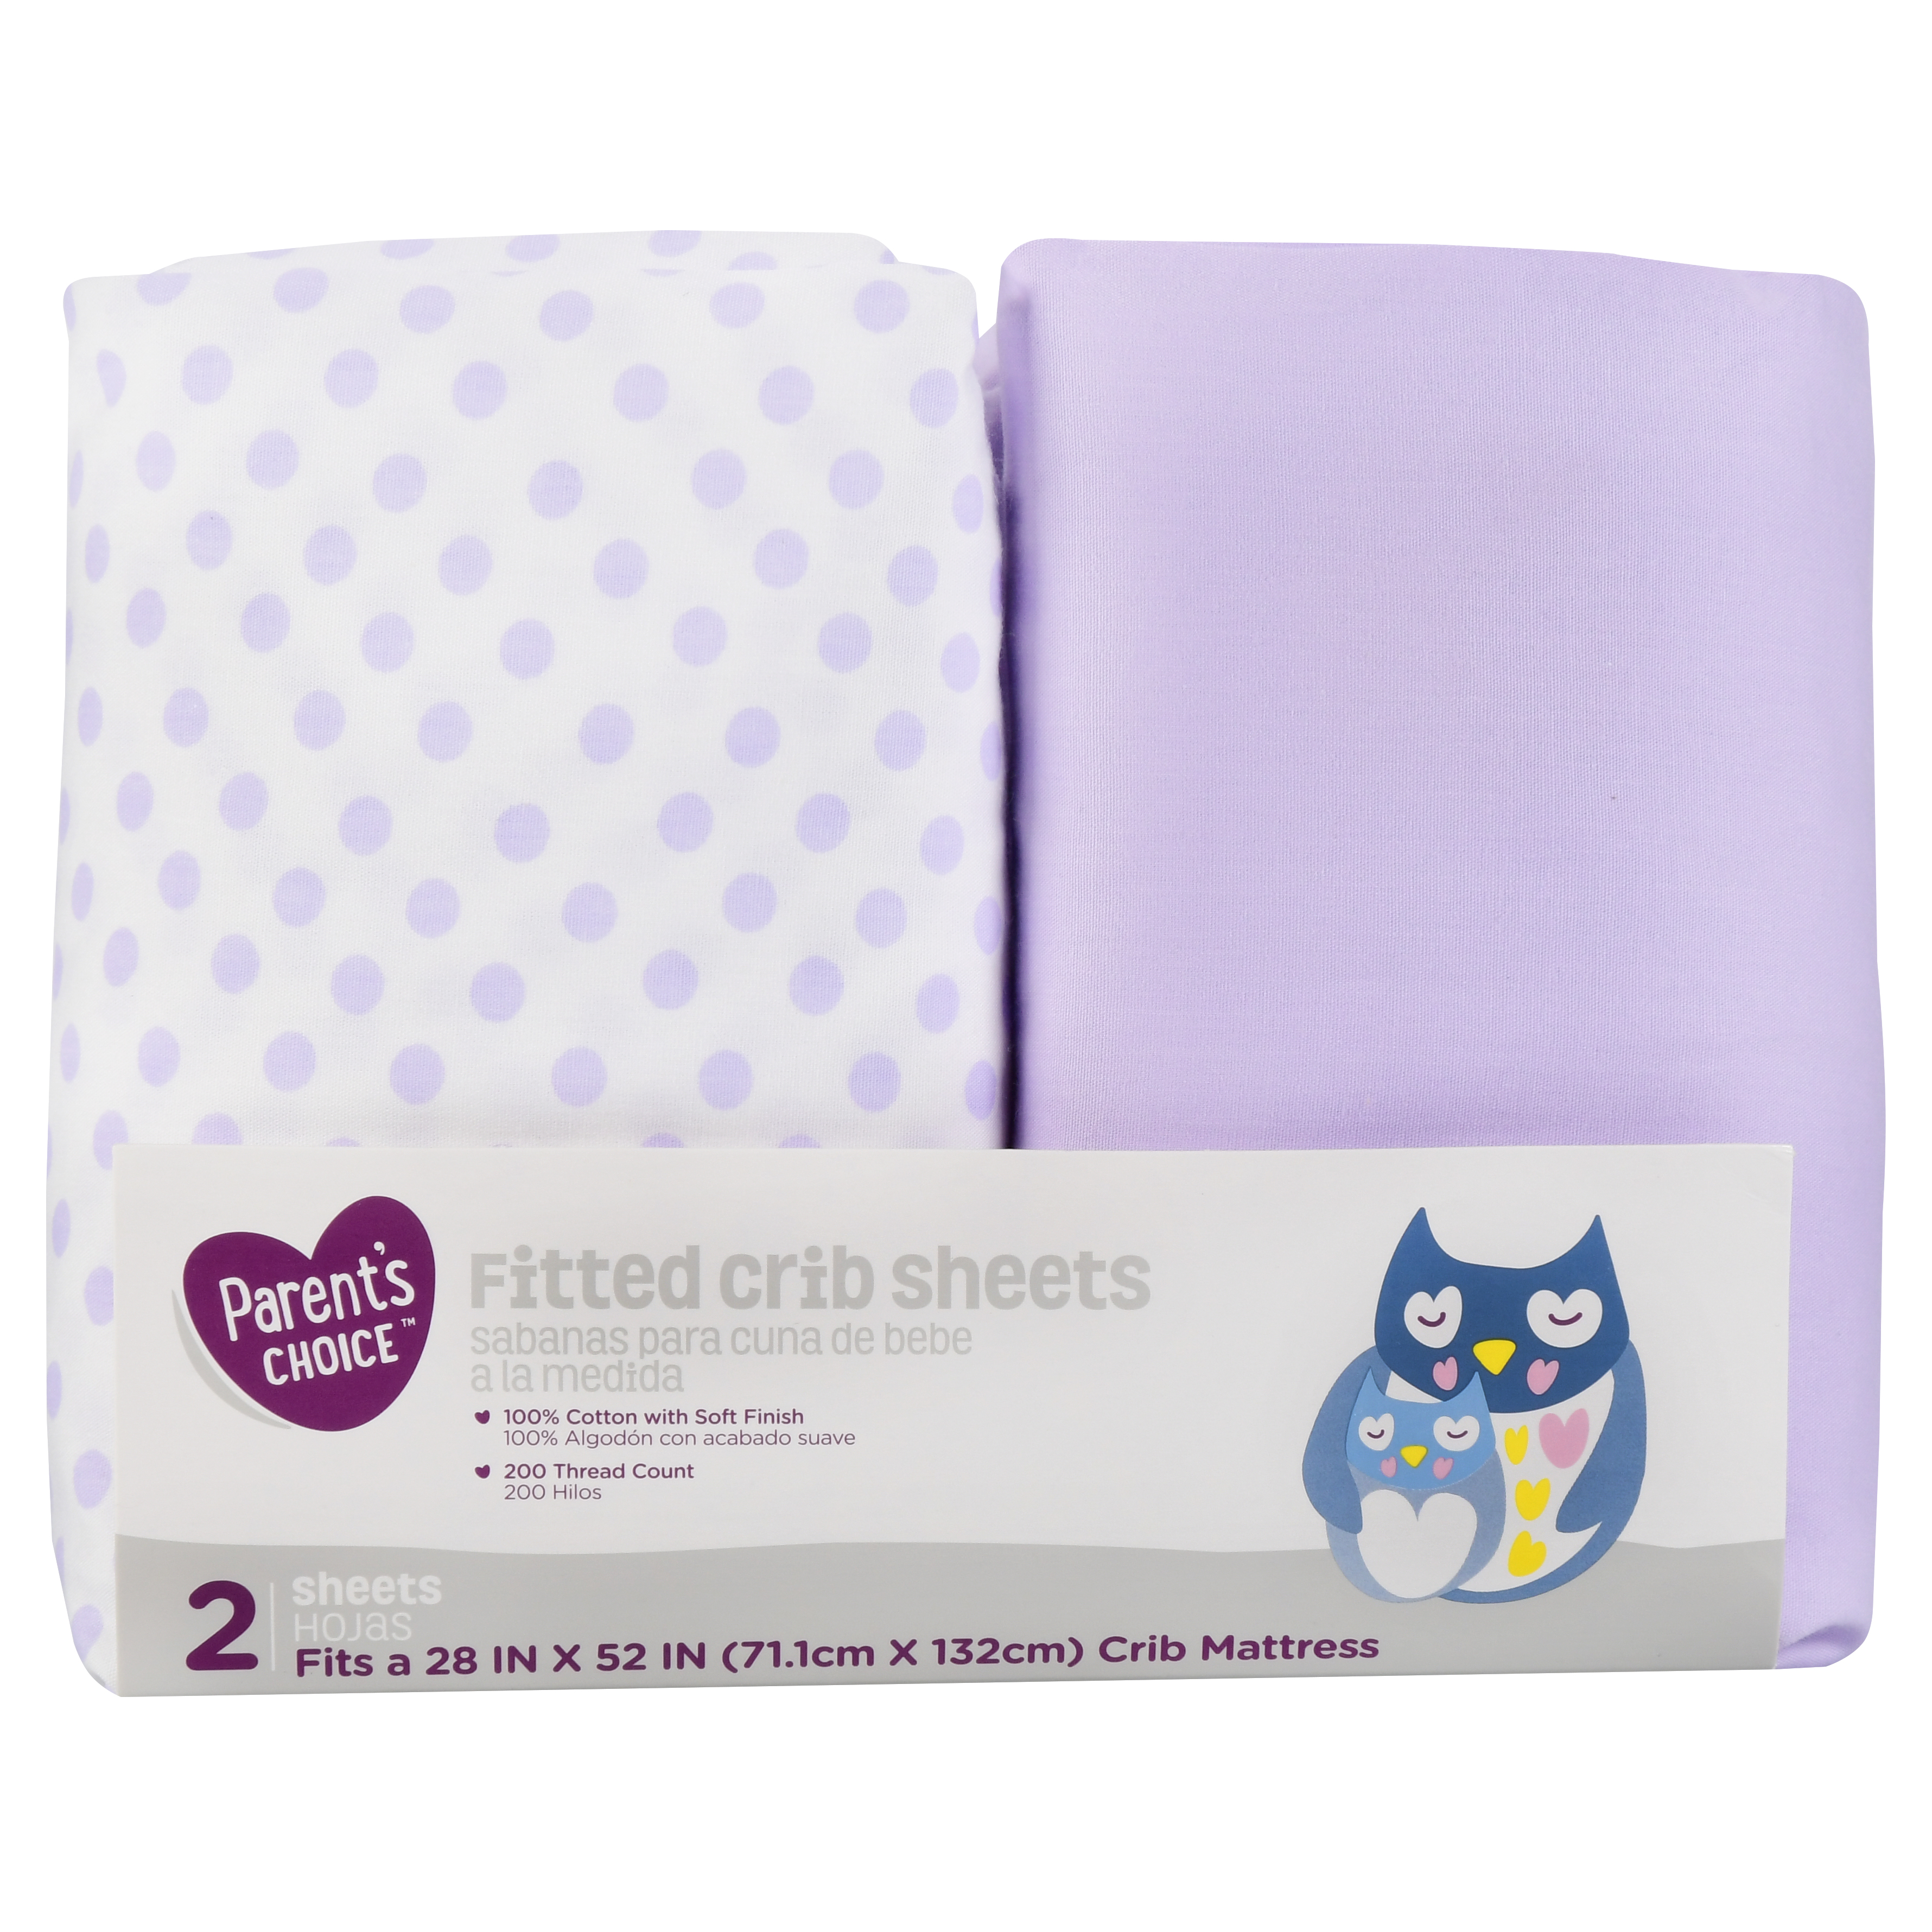 Parent's Choice Fitted Crib Sheets, Purple Print, 2 Pack